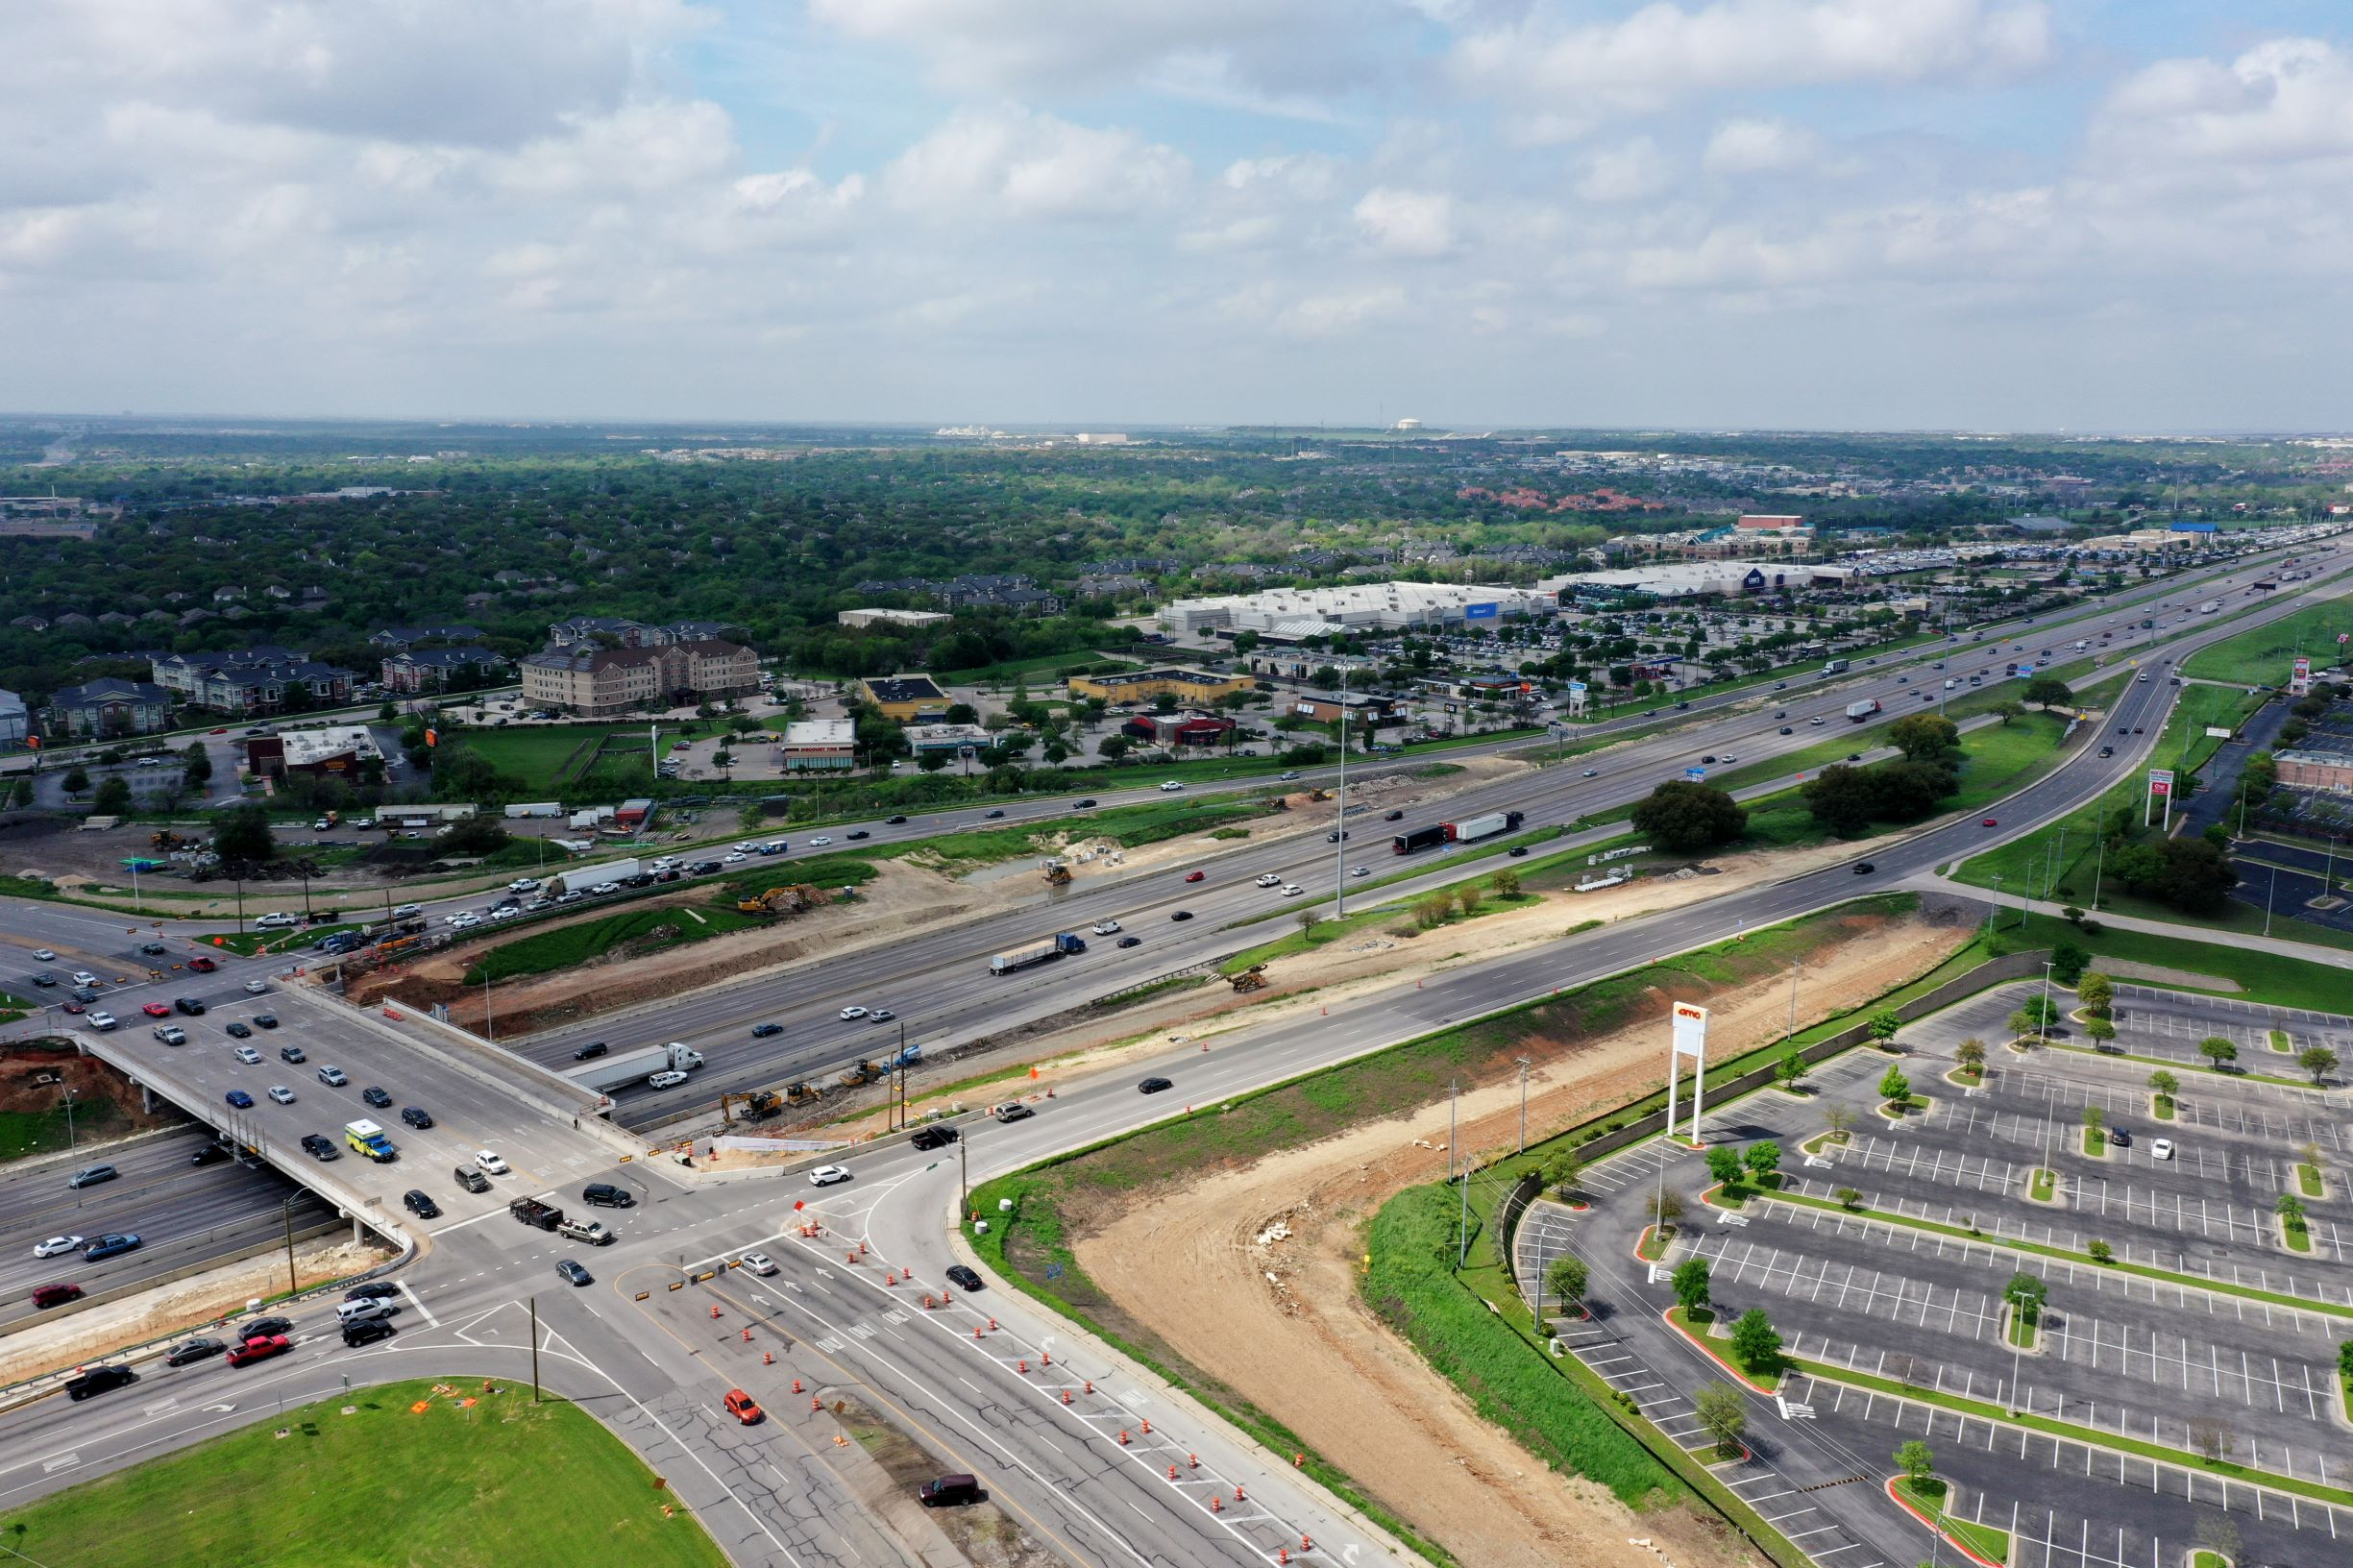 I-35 at Parmer Lane intersection bypass lane progress - March 2020